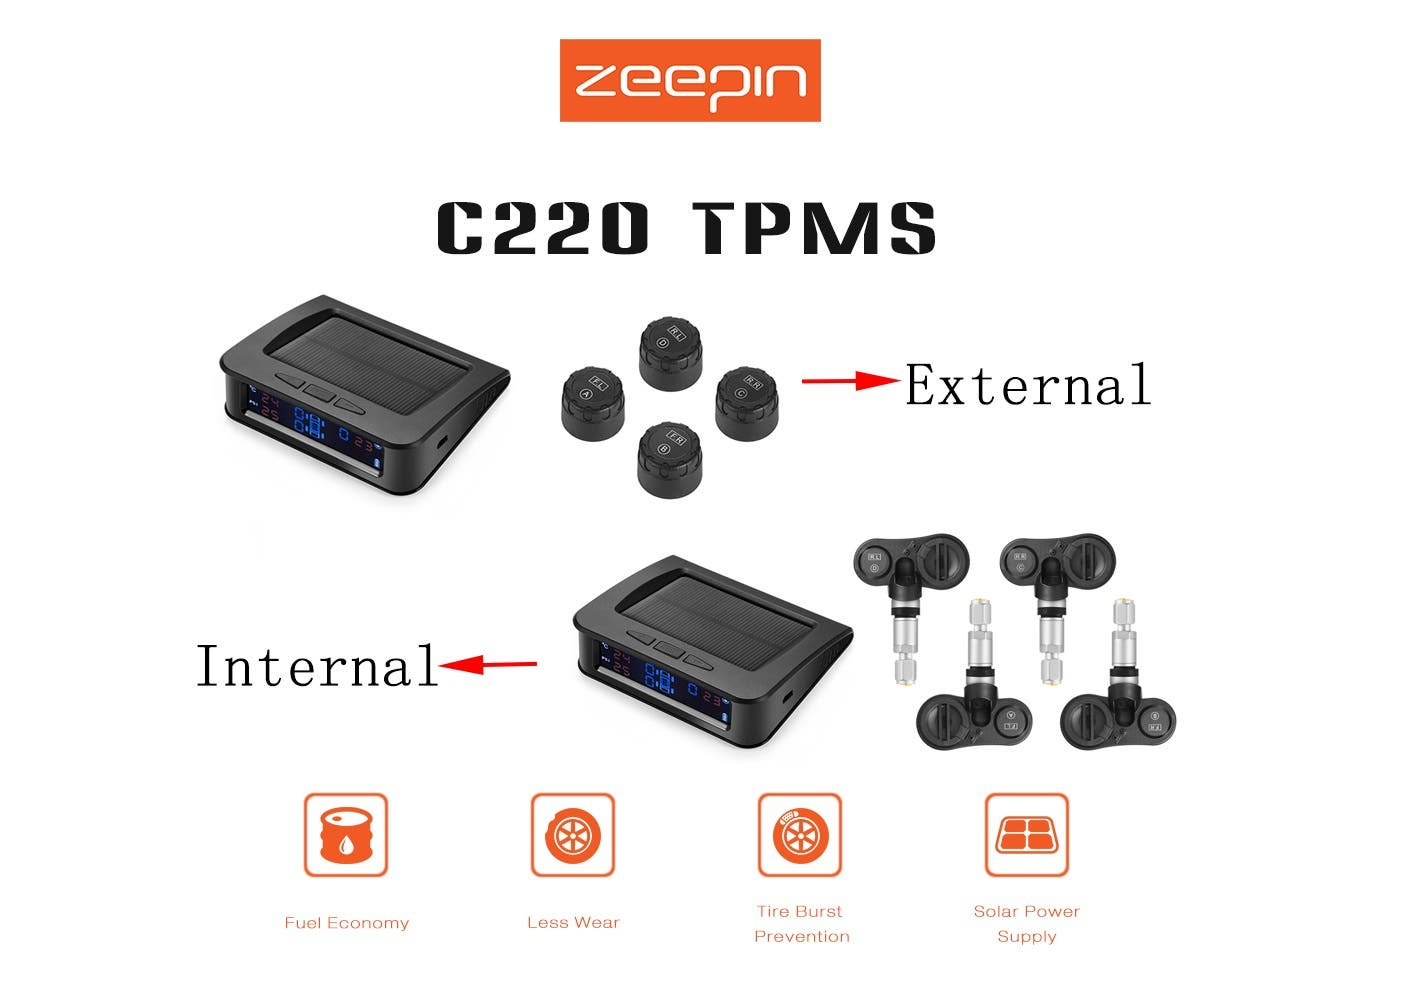 ZEEPIN C220 Solar Powered TPMS Car Tire Pressure Monitor System on Sale